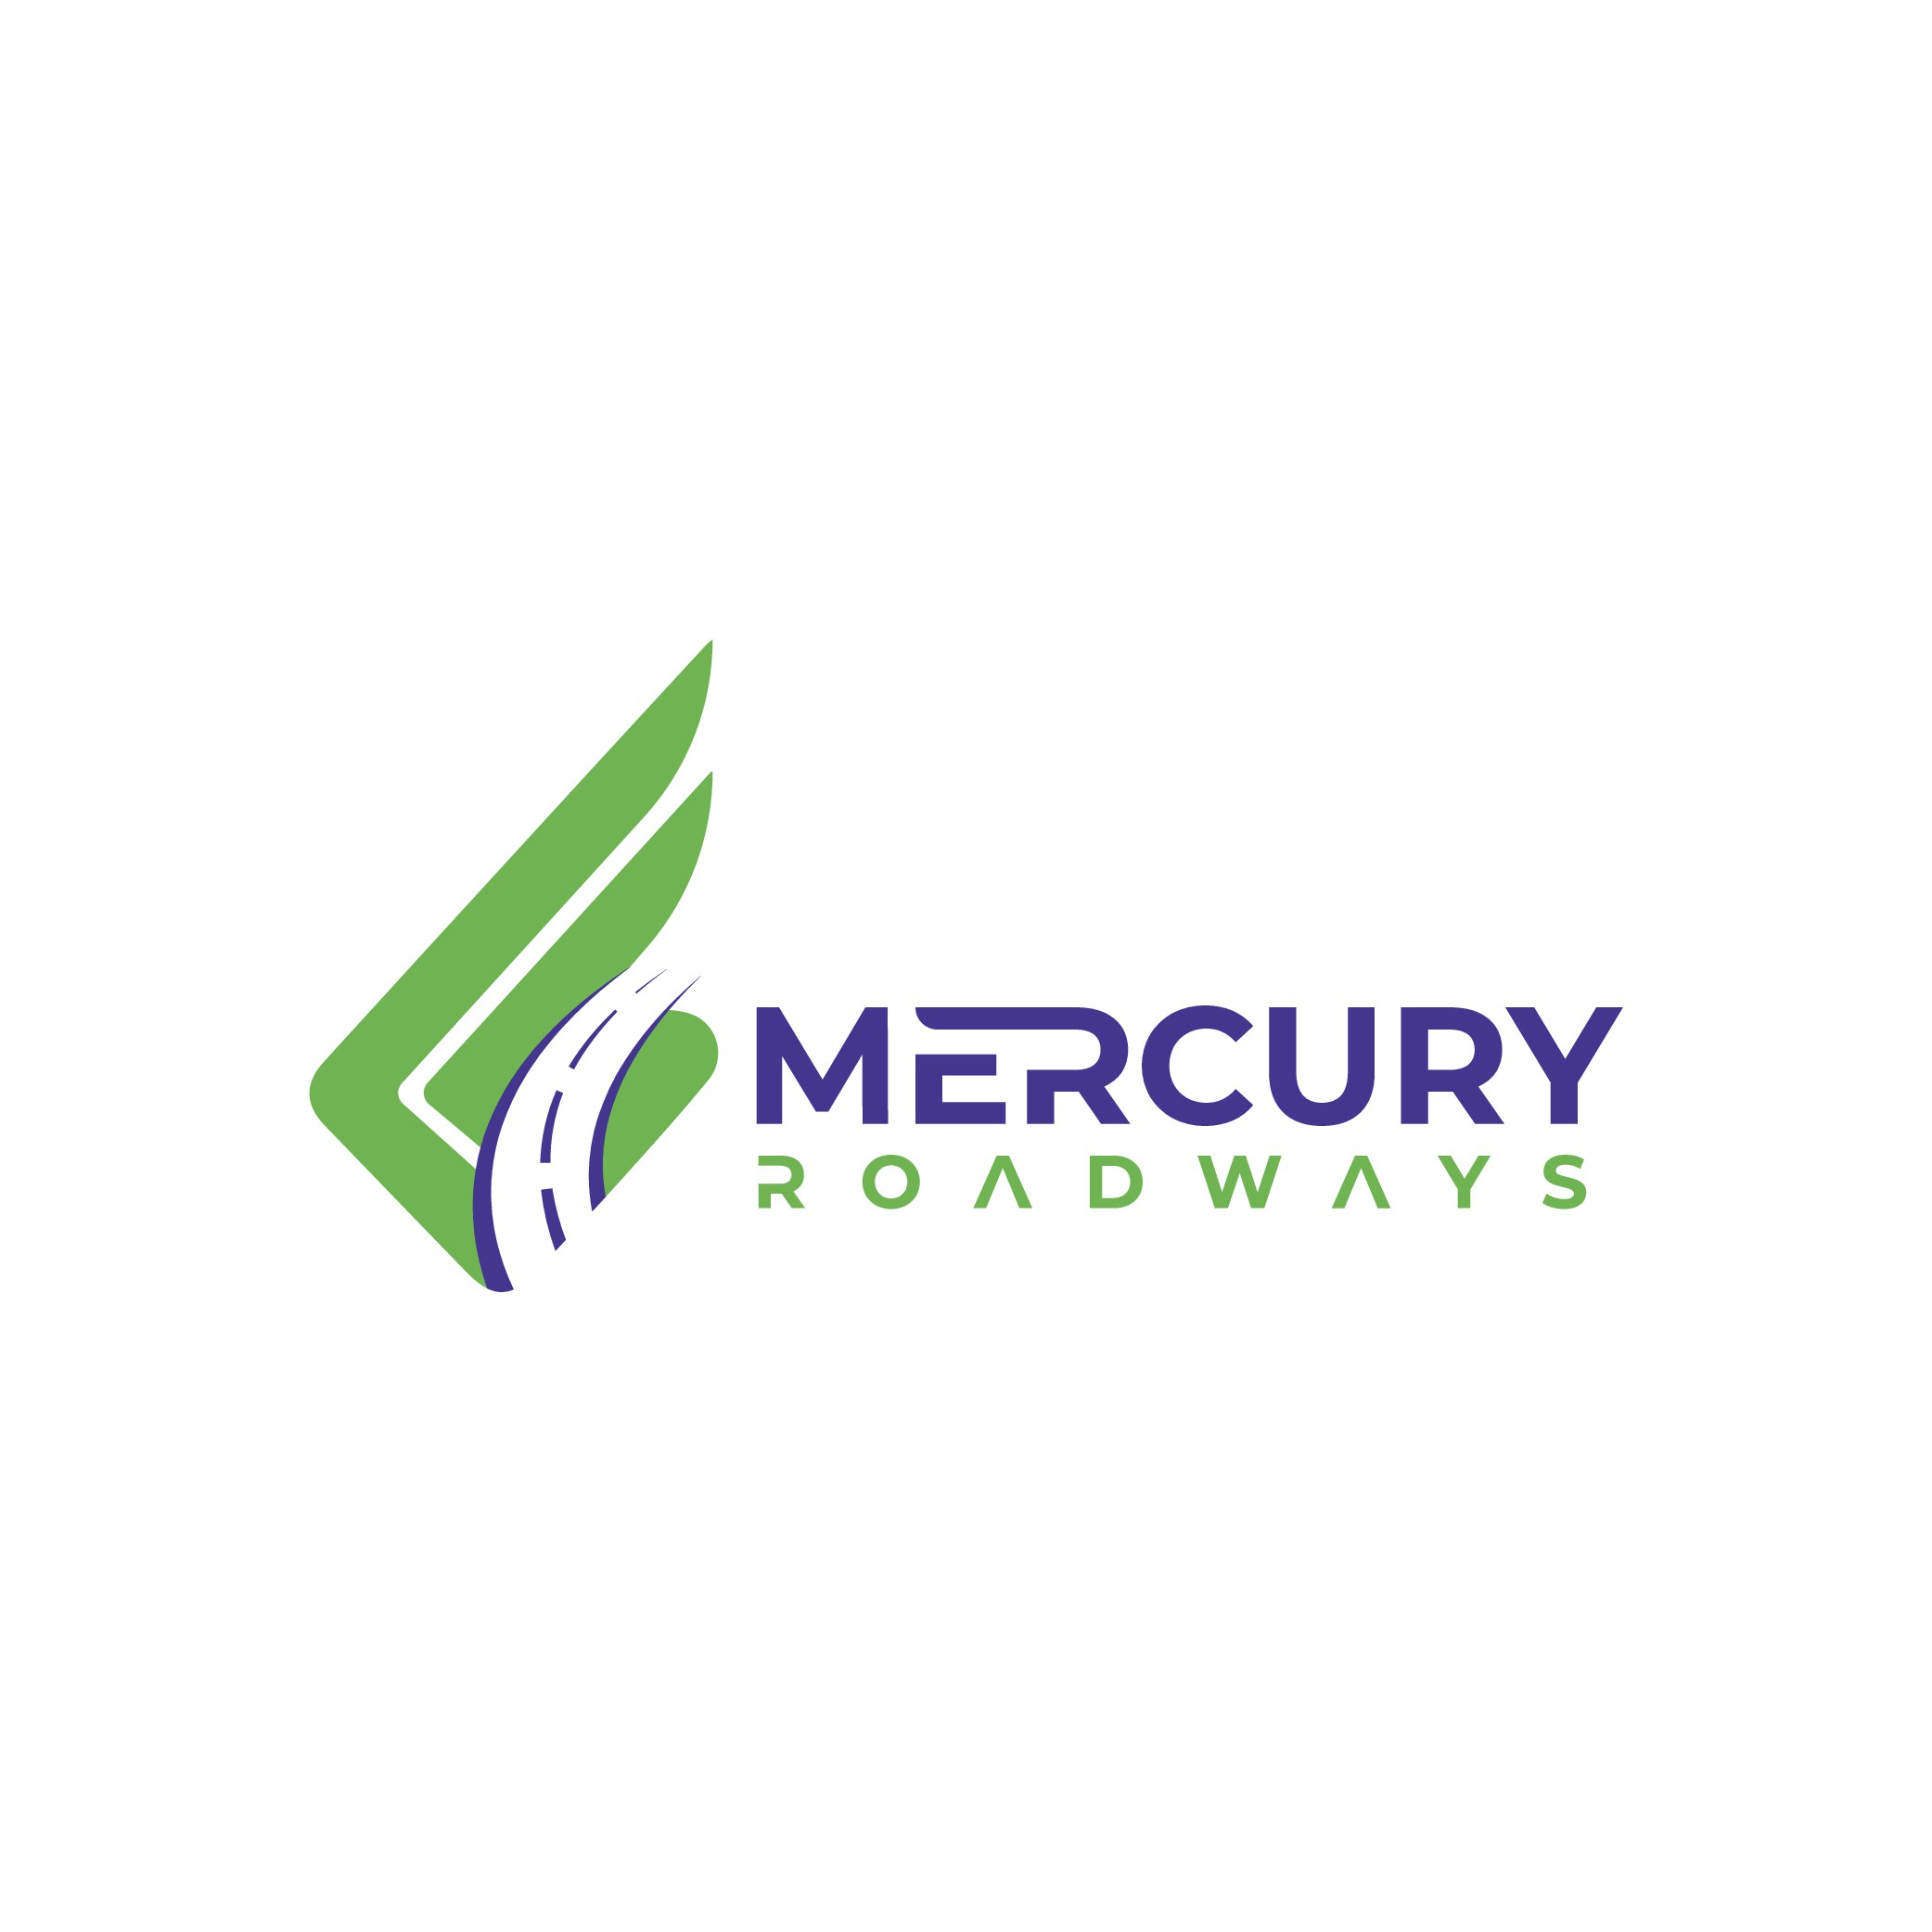 Help us brand Mercury Roadways, a last mile delivery company